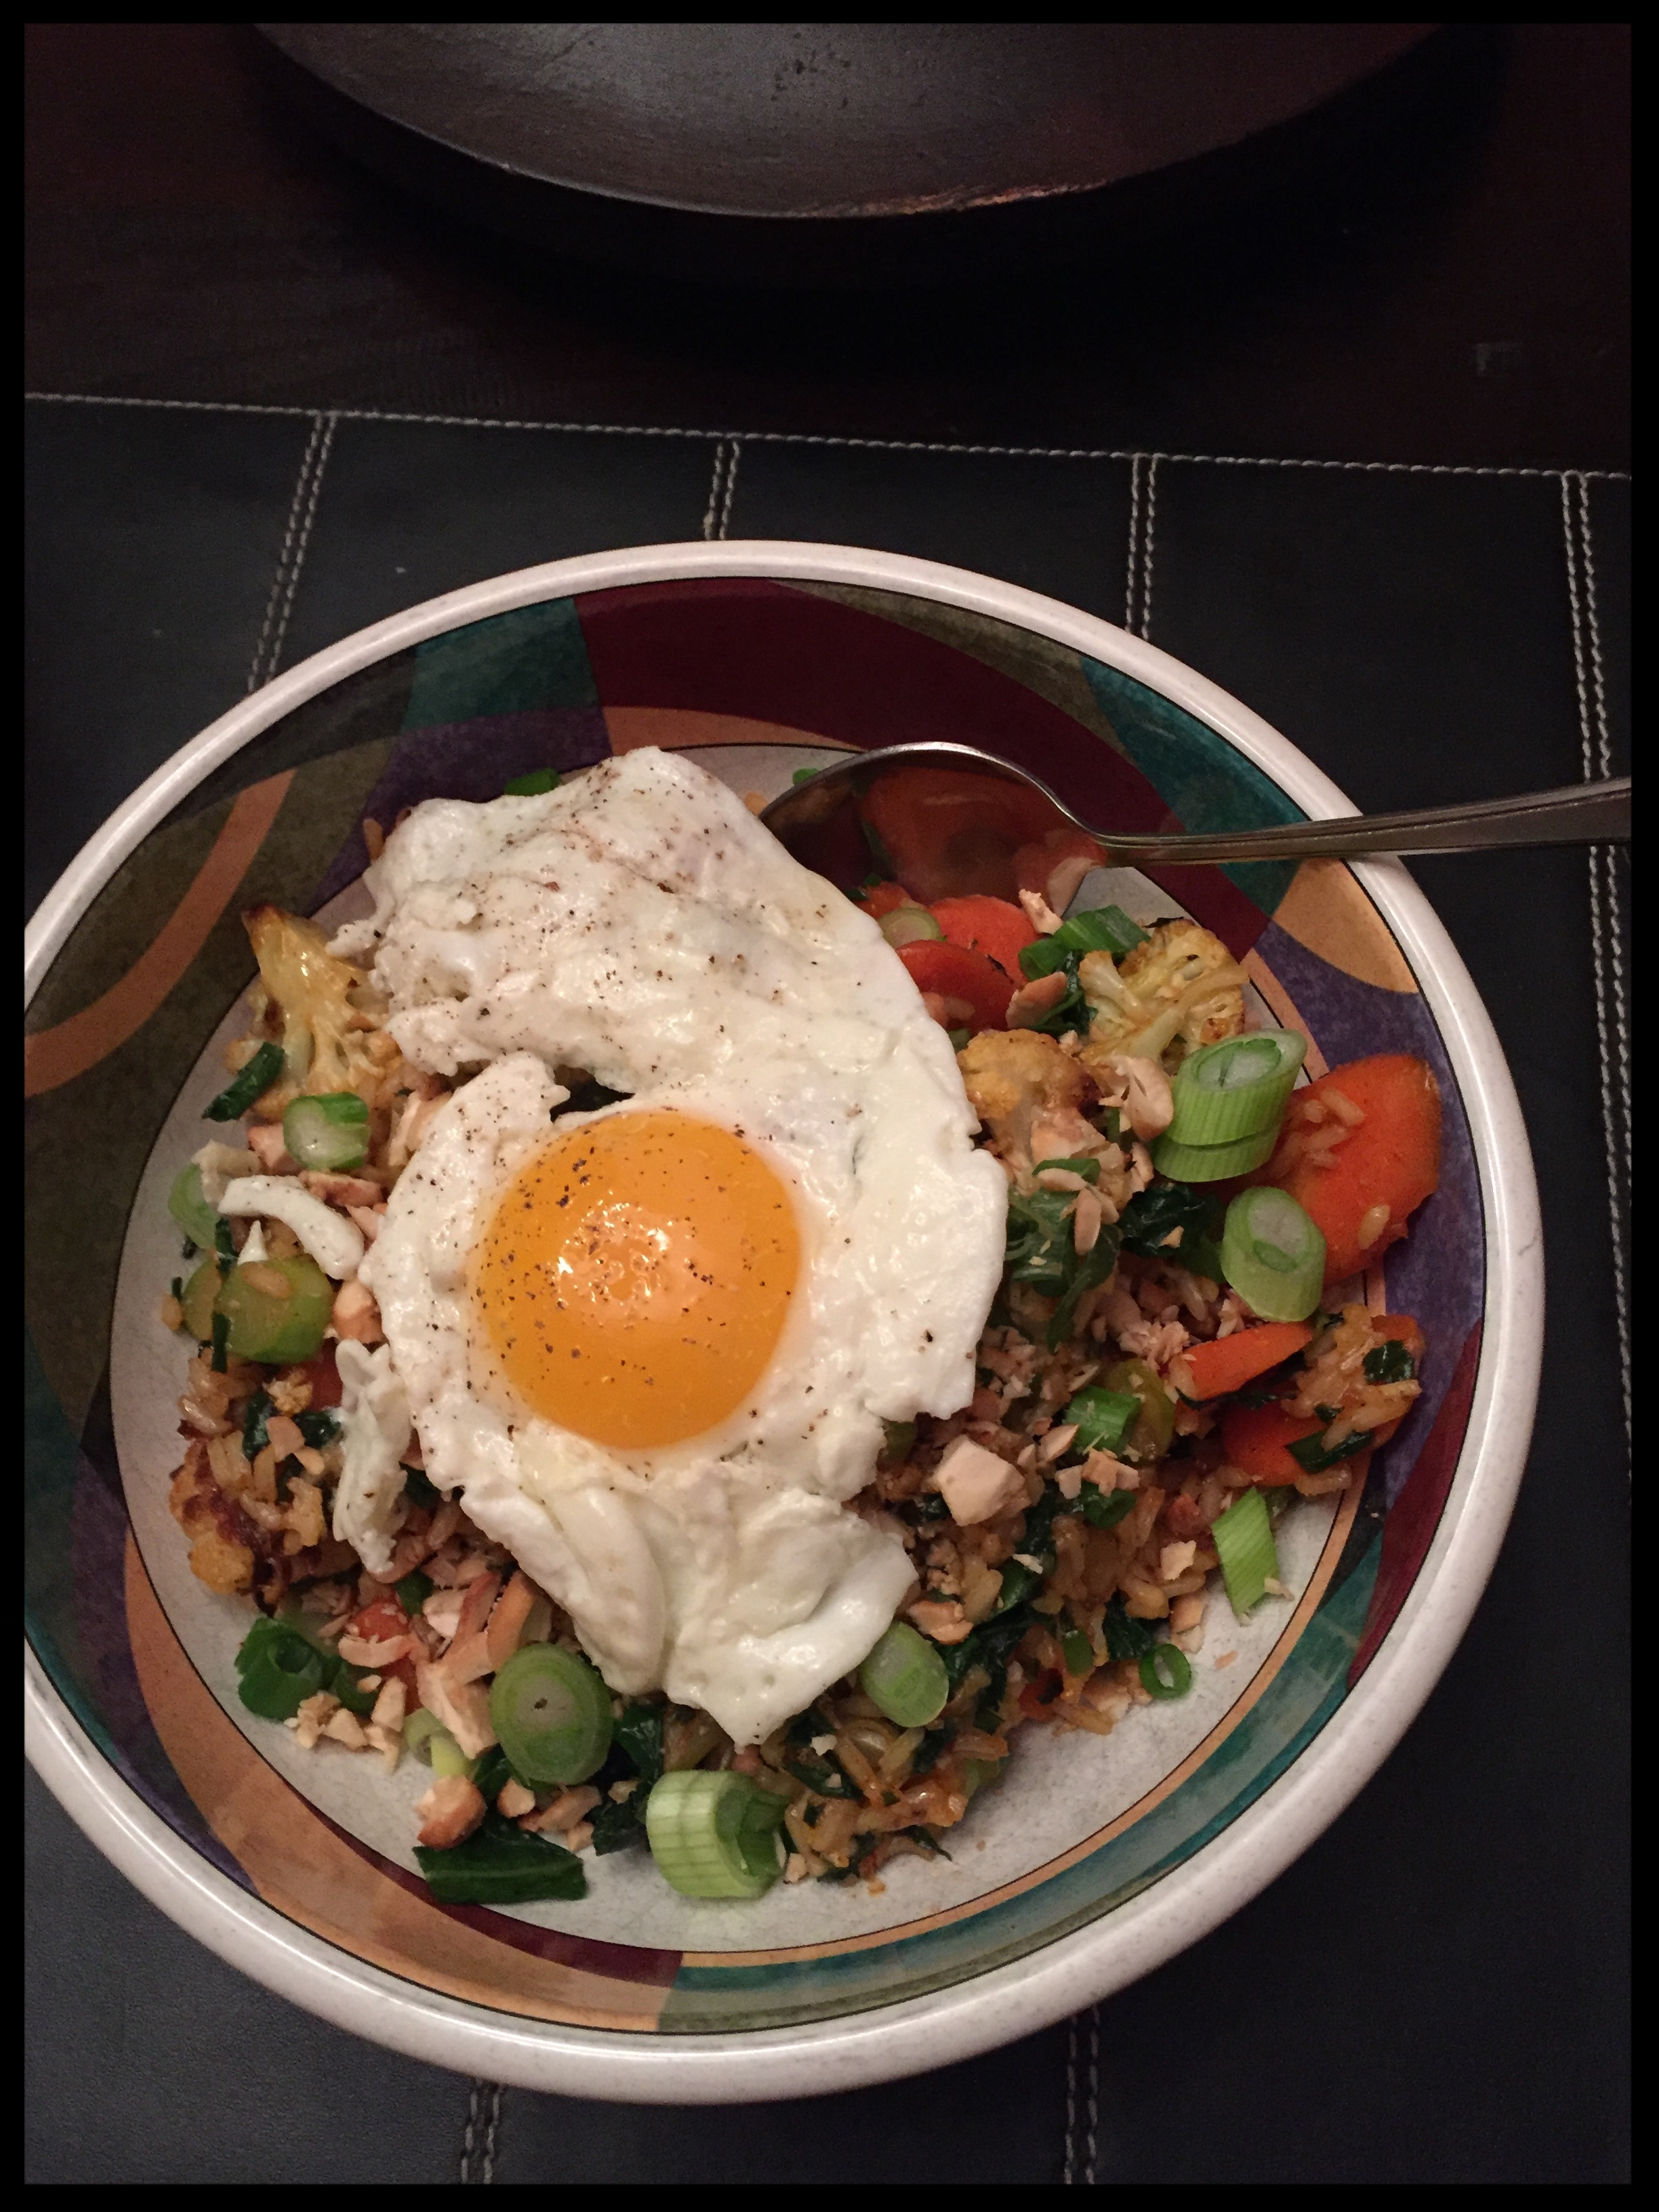 Vegetable Fried Rice Bowls with Cauliflower, Gai Lan & Fried Egg